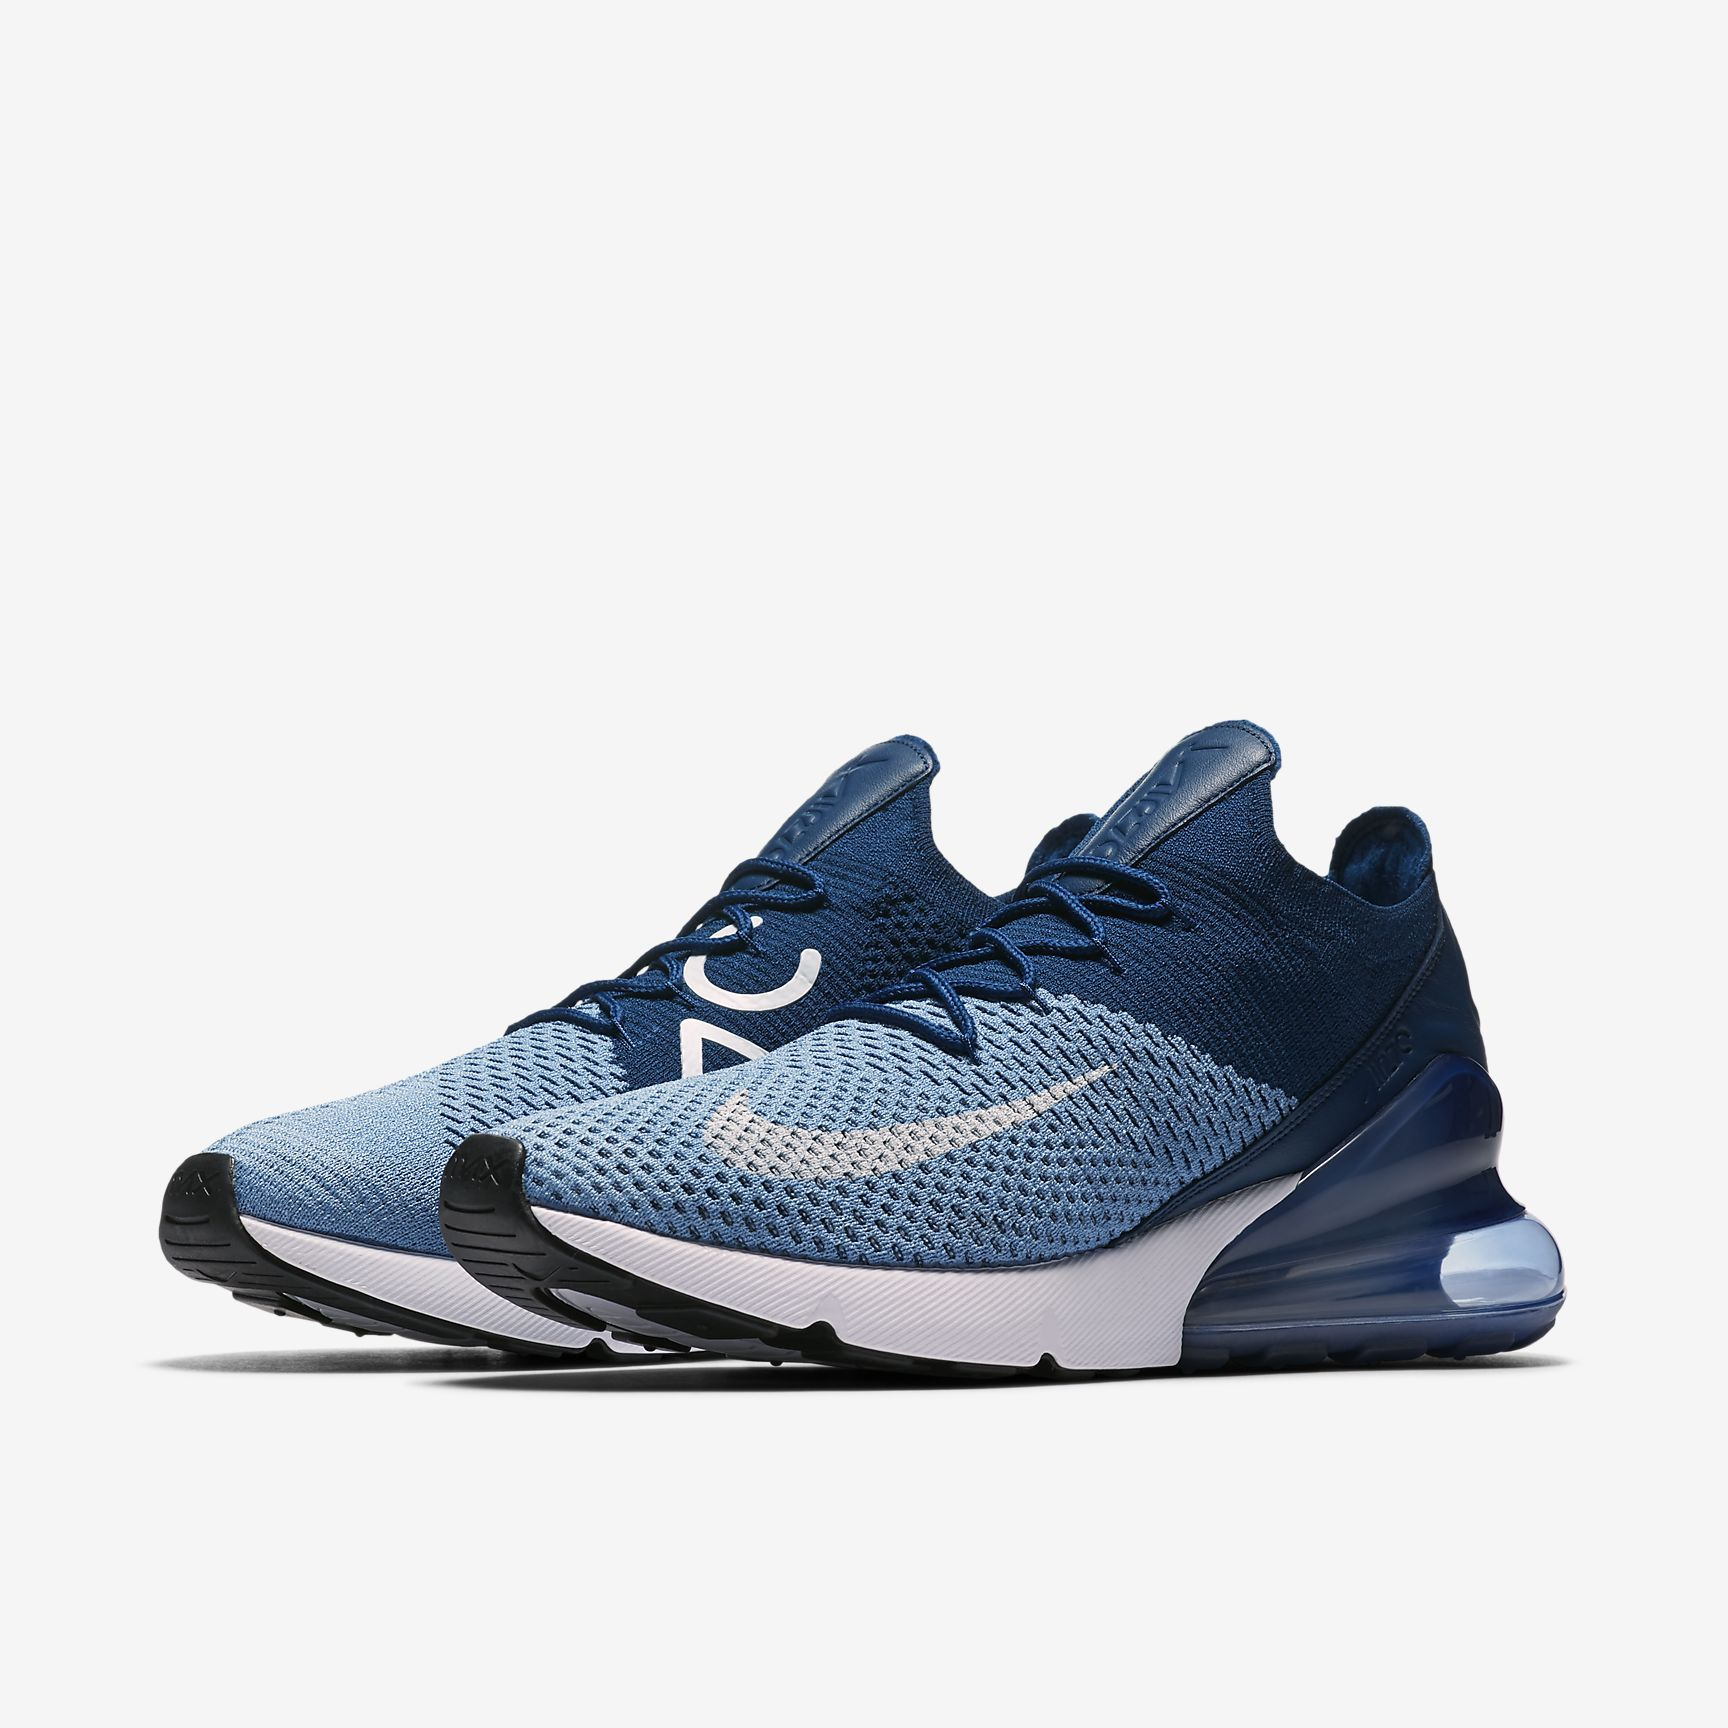 nike air max 270 midnight navy black white